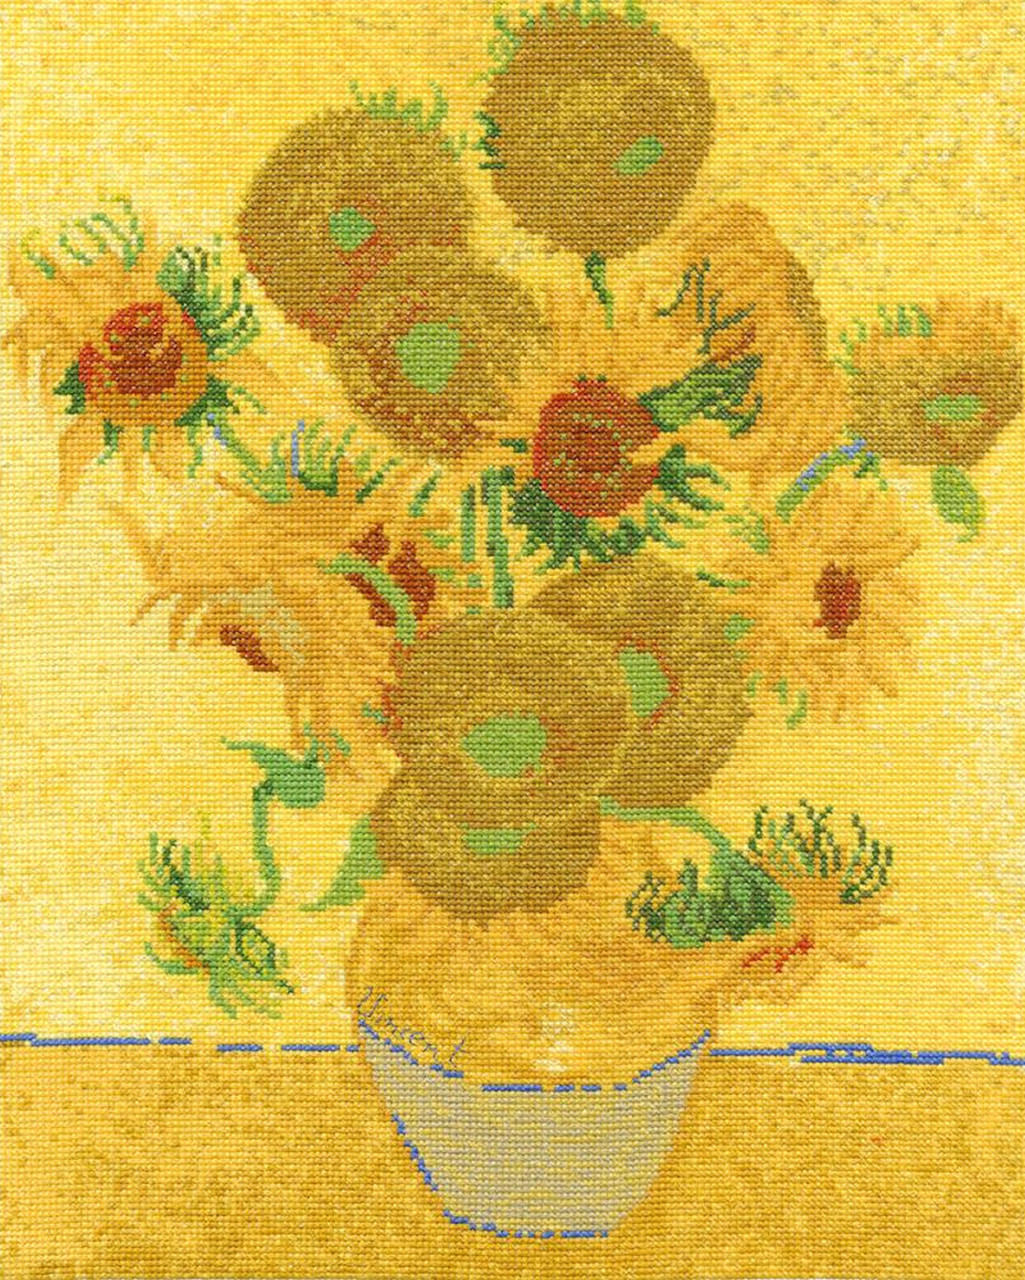 DMC - Van Gogh's Sunflowers